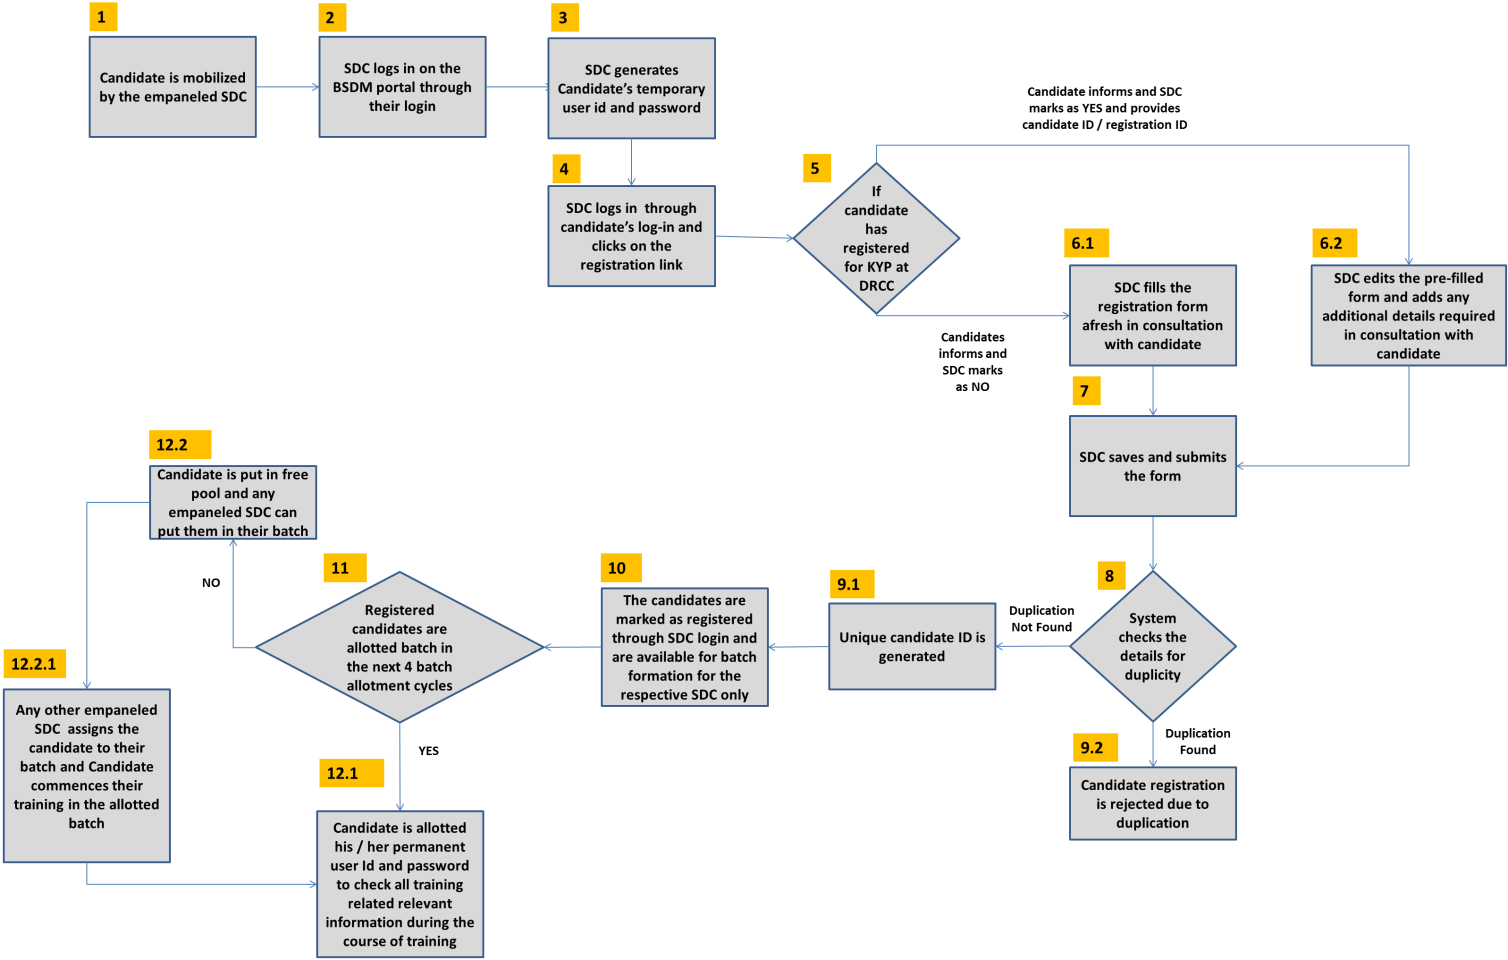 Bihar skill development mission candidate registration process scenario b candidate registration through sdc login process flow diagram nvjuhfo Images